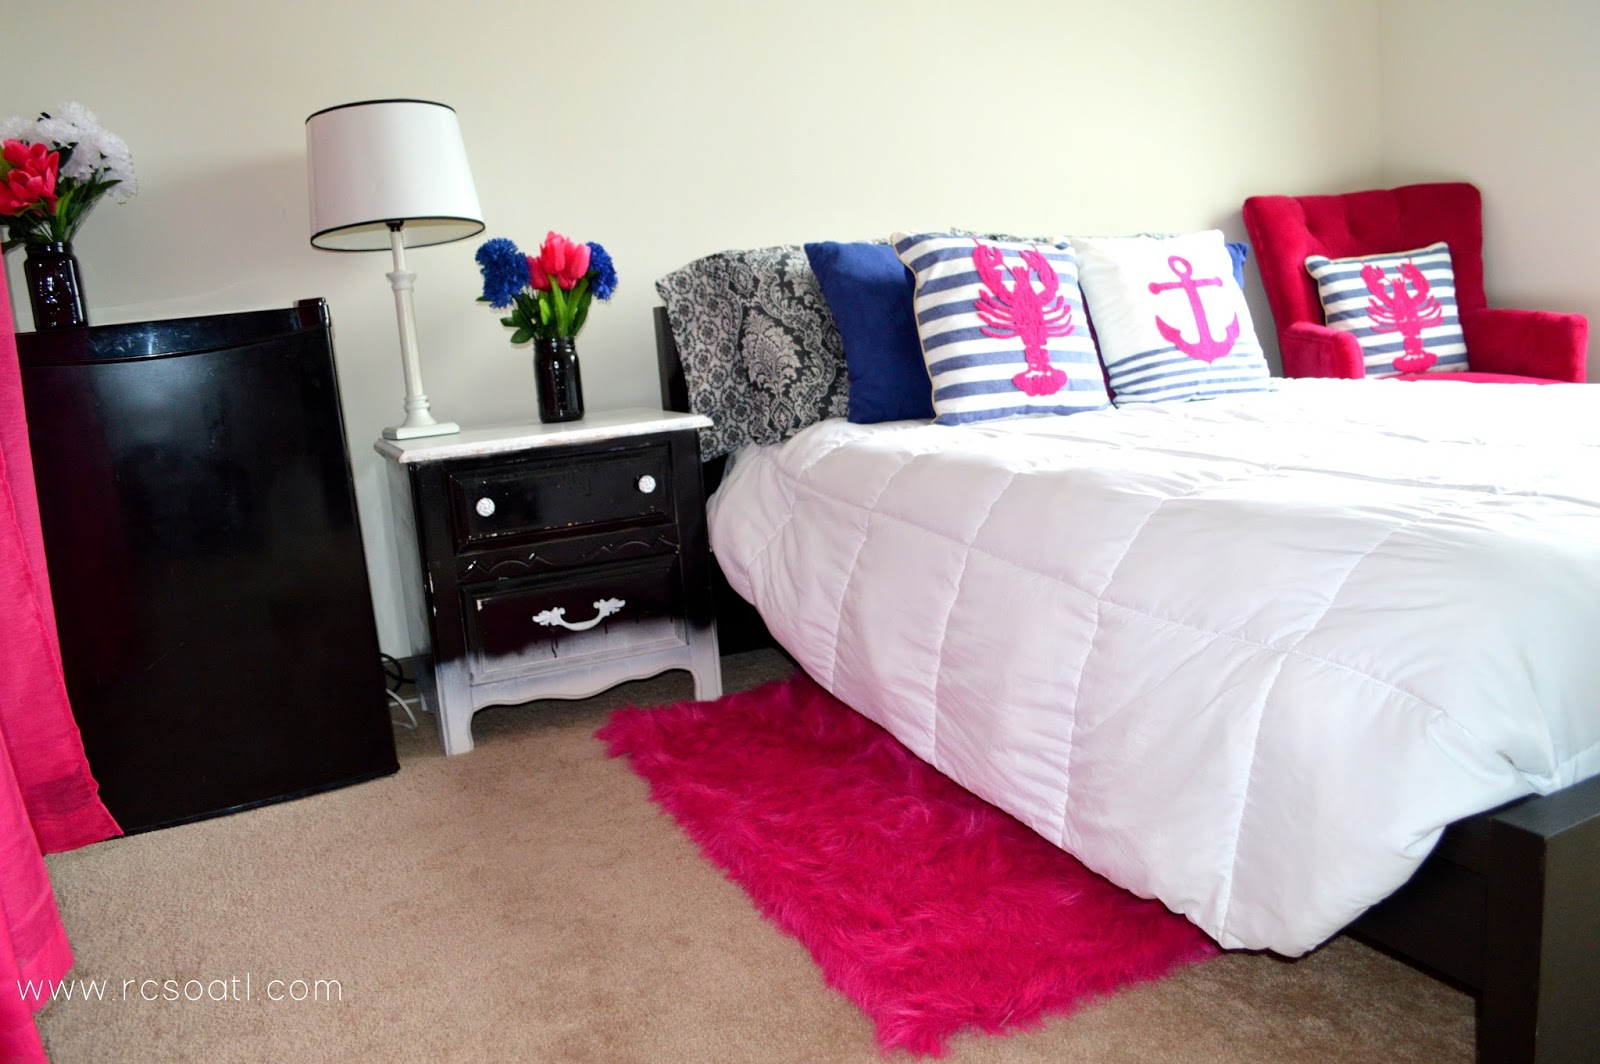 Real College Student Of Atlanta My New Room Hot Pink And Blue Bedroom Decor